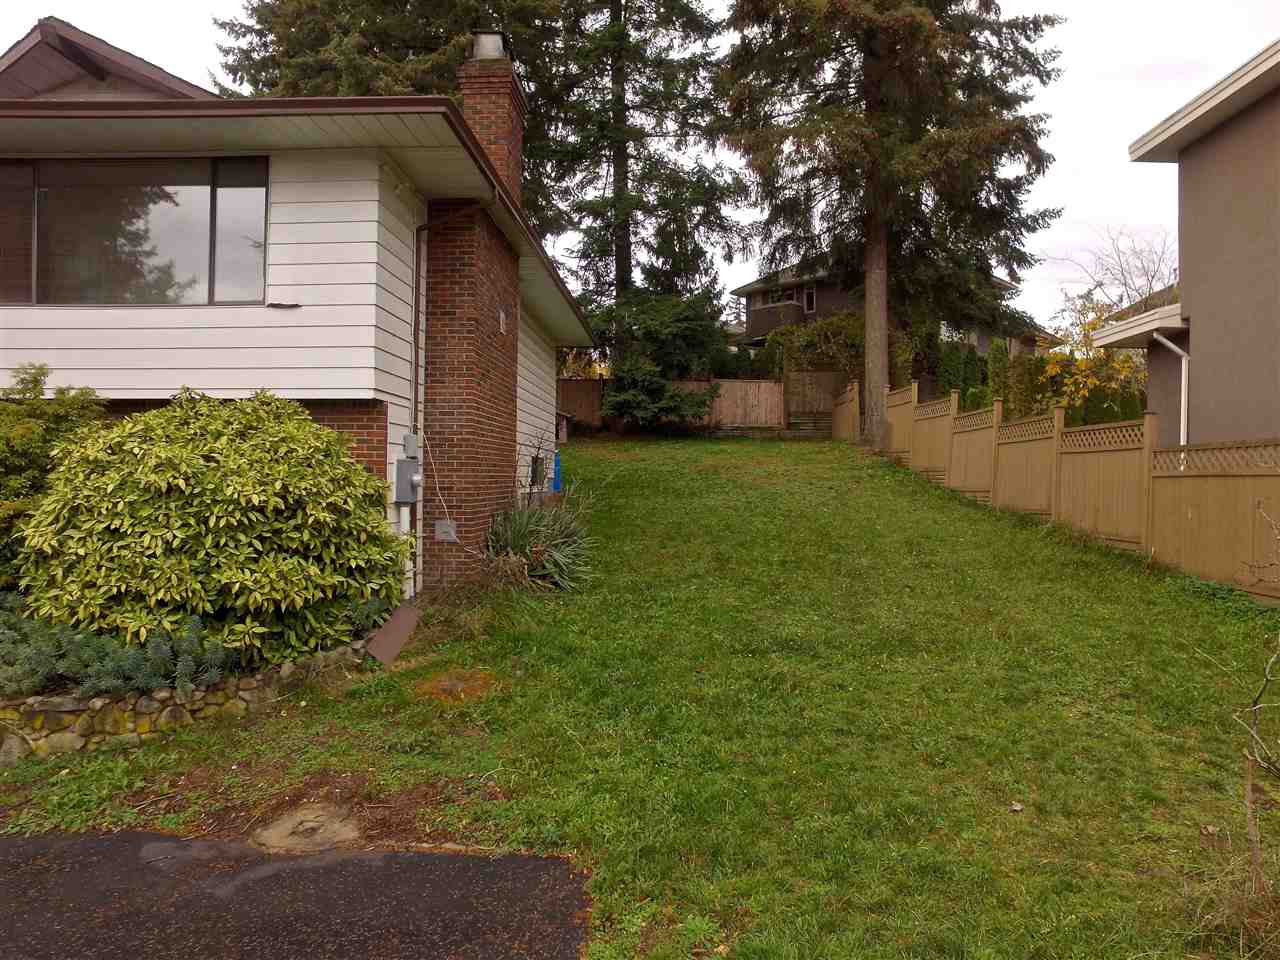 "Photo 18: 16495 78 Avenue in Surrey: Fleetwood Tynehead House for sale in ""FLEETWOOD"" : MLS® # R2122962"